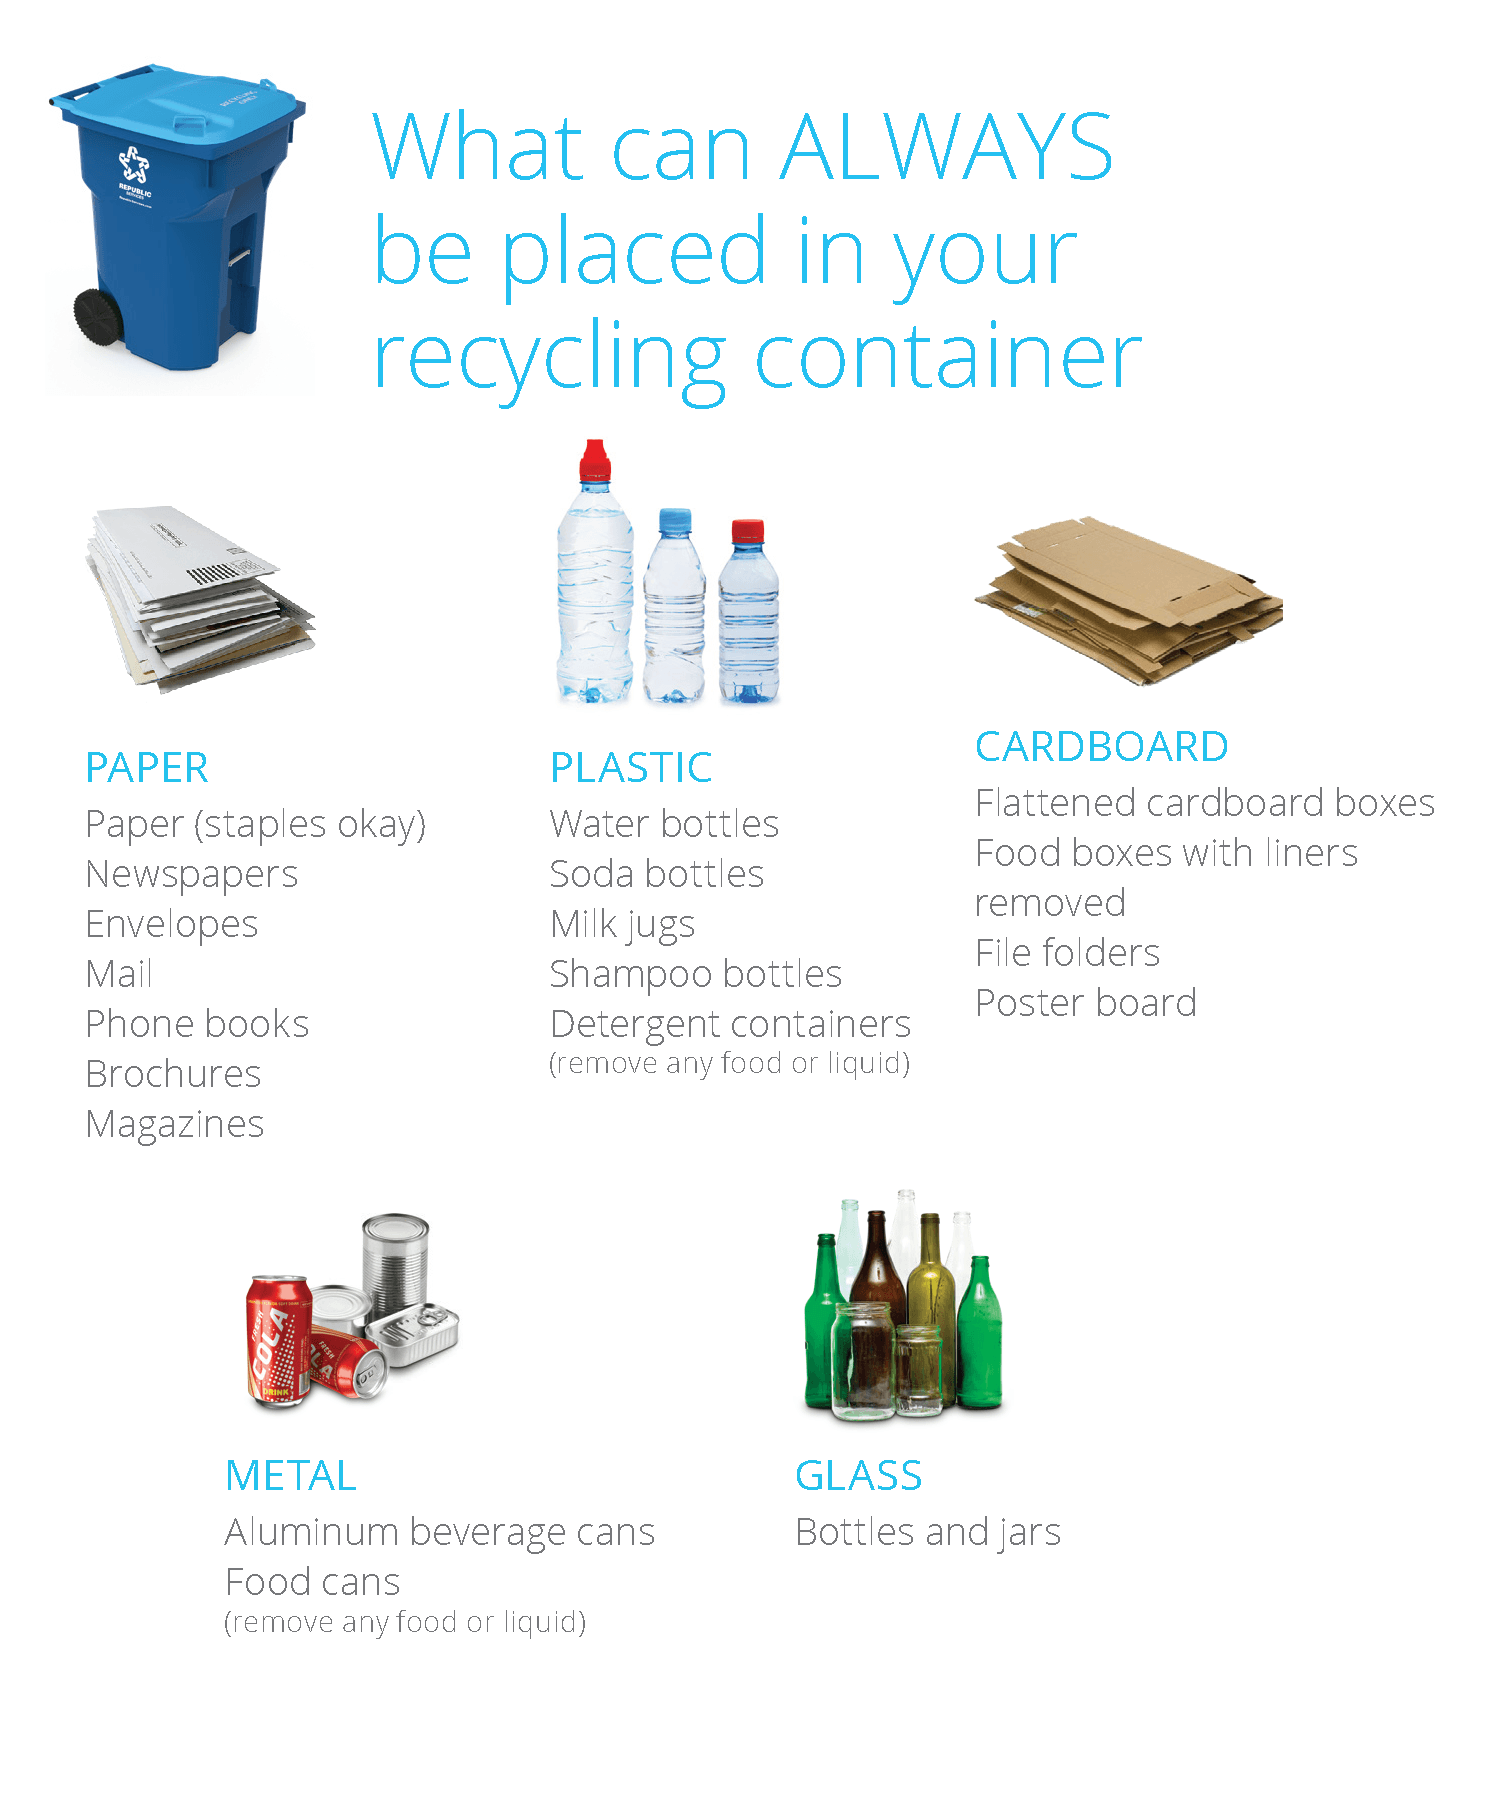 2019 Recycling Information Pictures and Descriptions